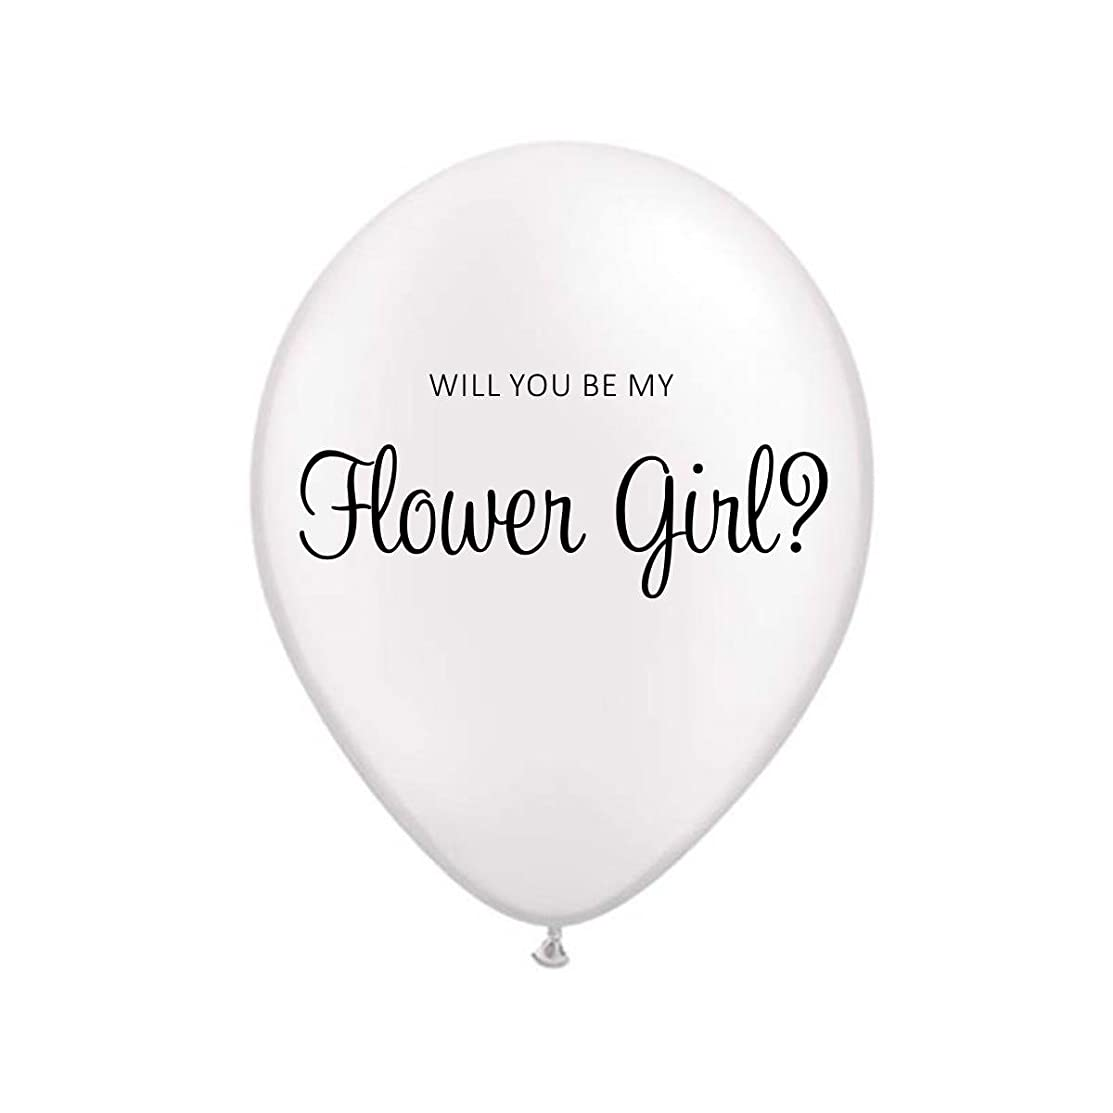 White Will You Be My Flower Girl Balloon, Will You Be My Flower Girl Invitation, Cute Invitation, Girl Invitation, Flower Girl Invitation, Ballons